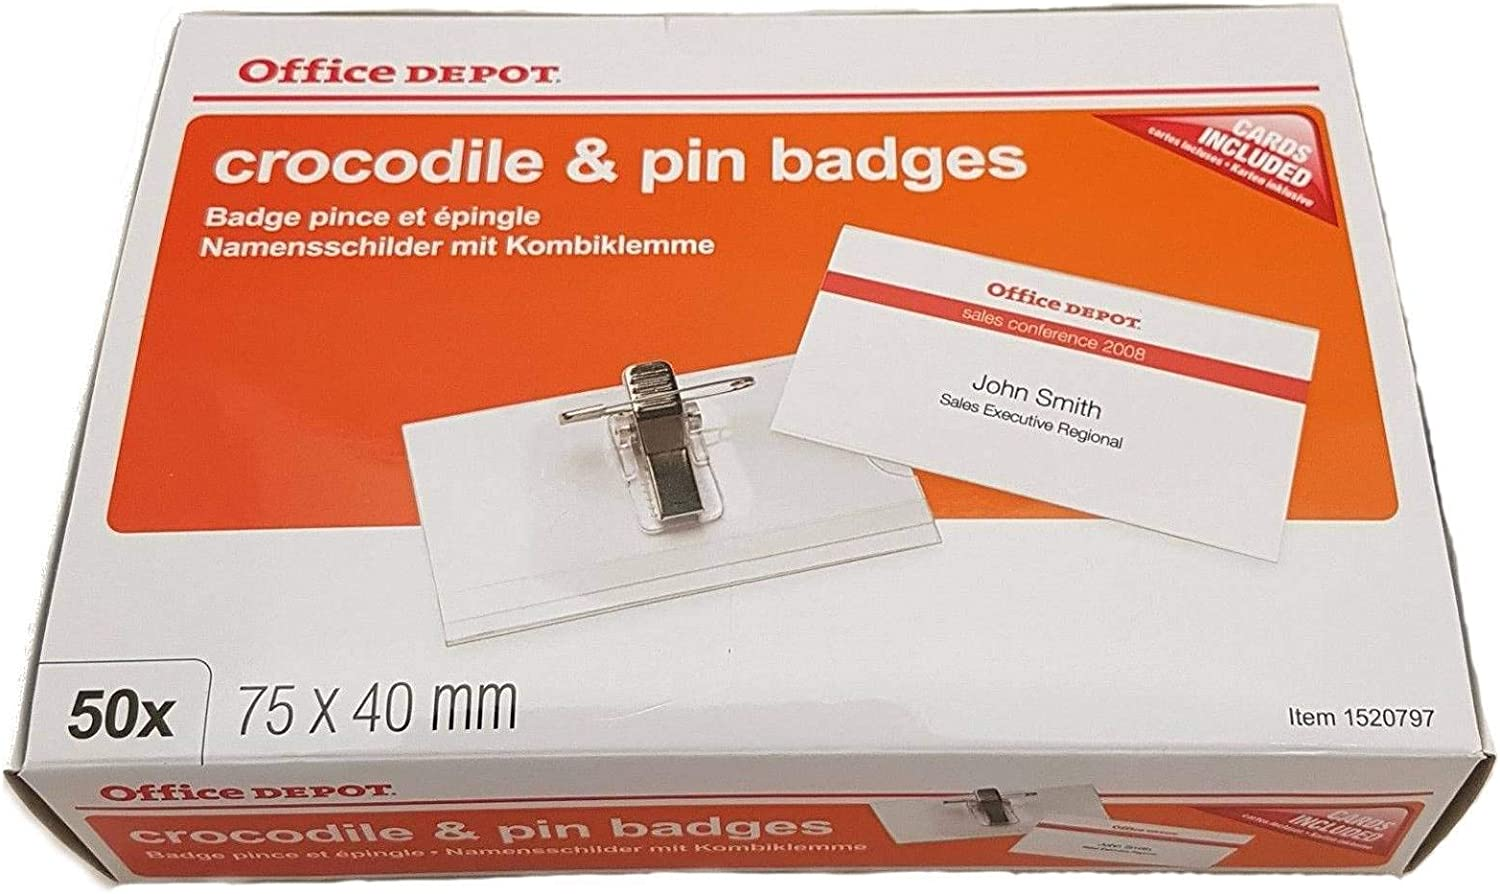 Package 1520797 Clip Office Depot 75/x 40/mm 50 niceday Identifiers with Pin